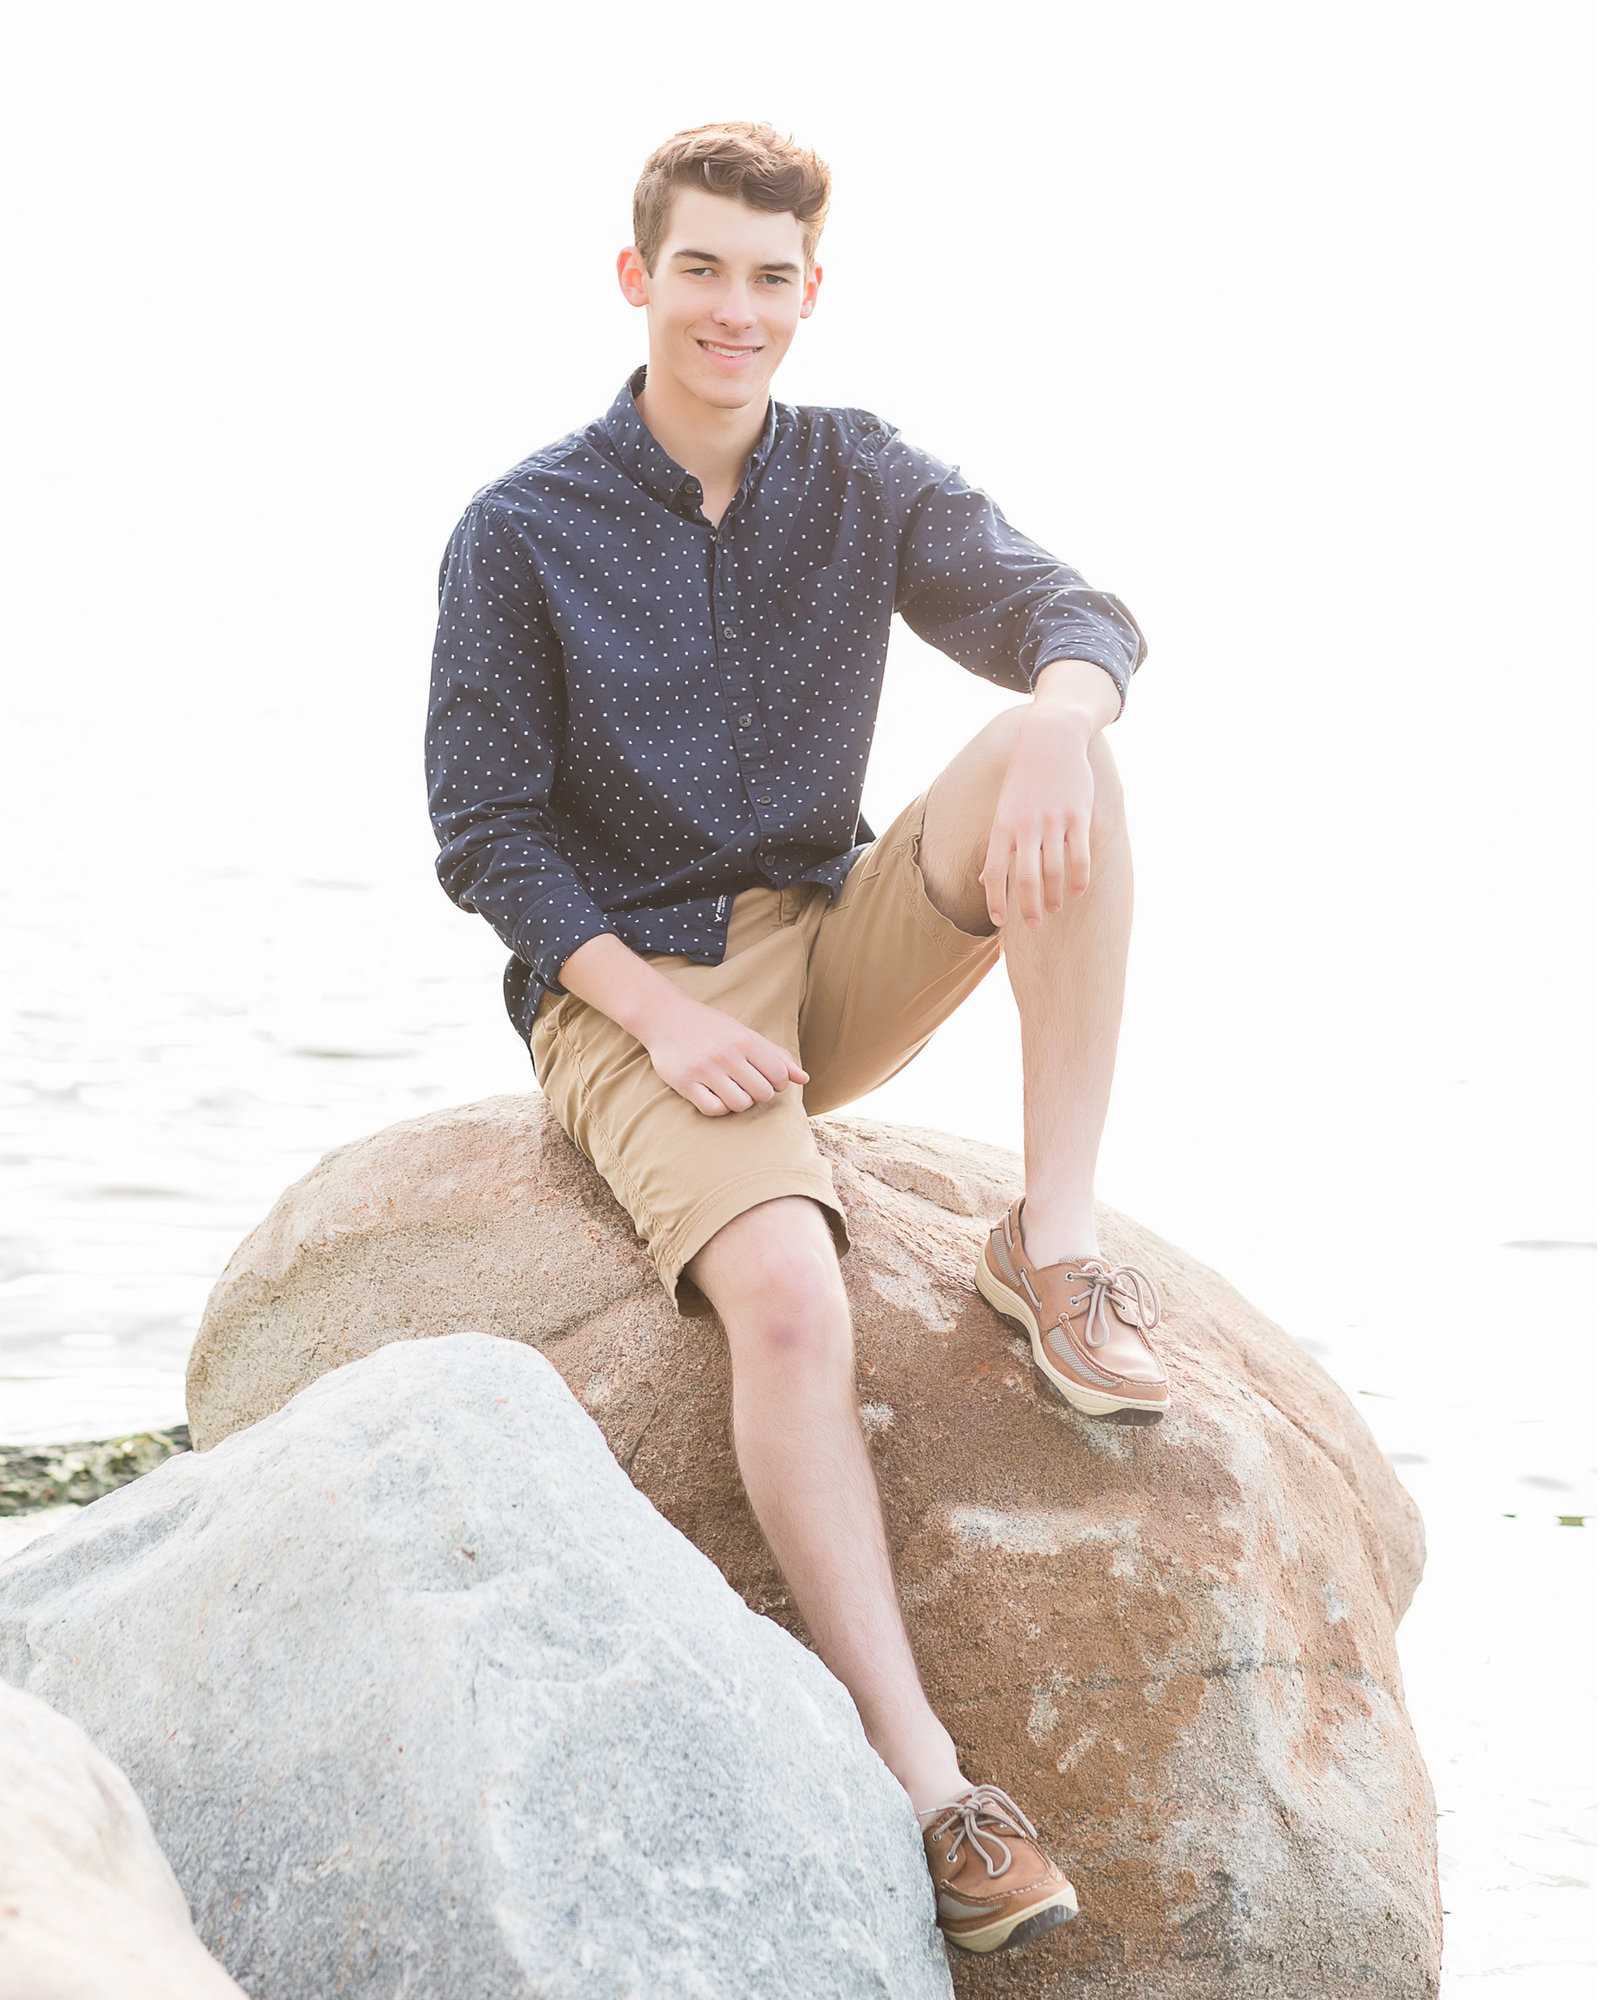 senior guy-nature session-6028-cv-8x10